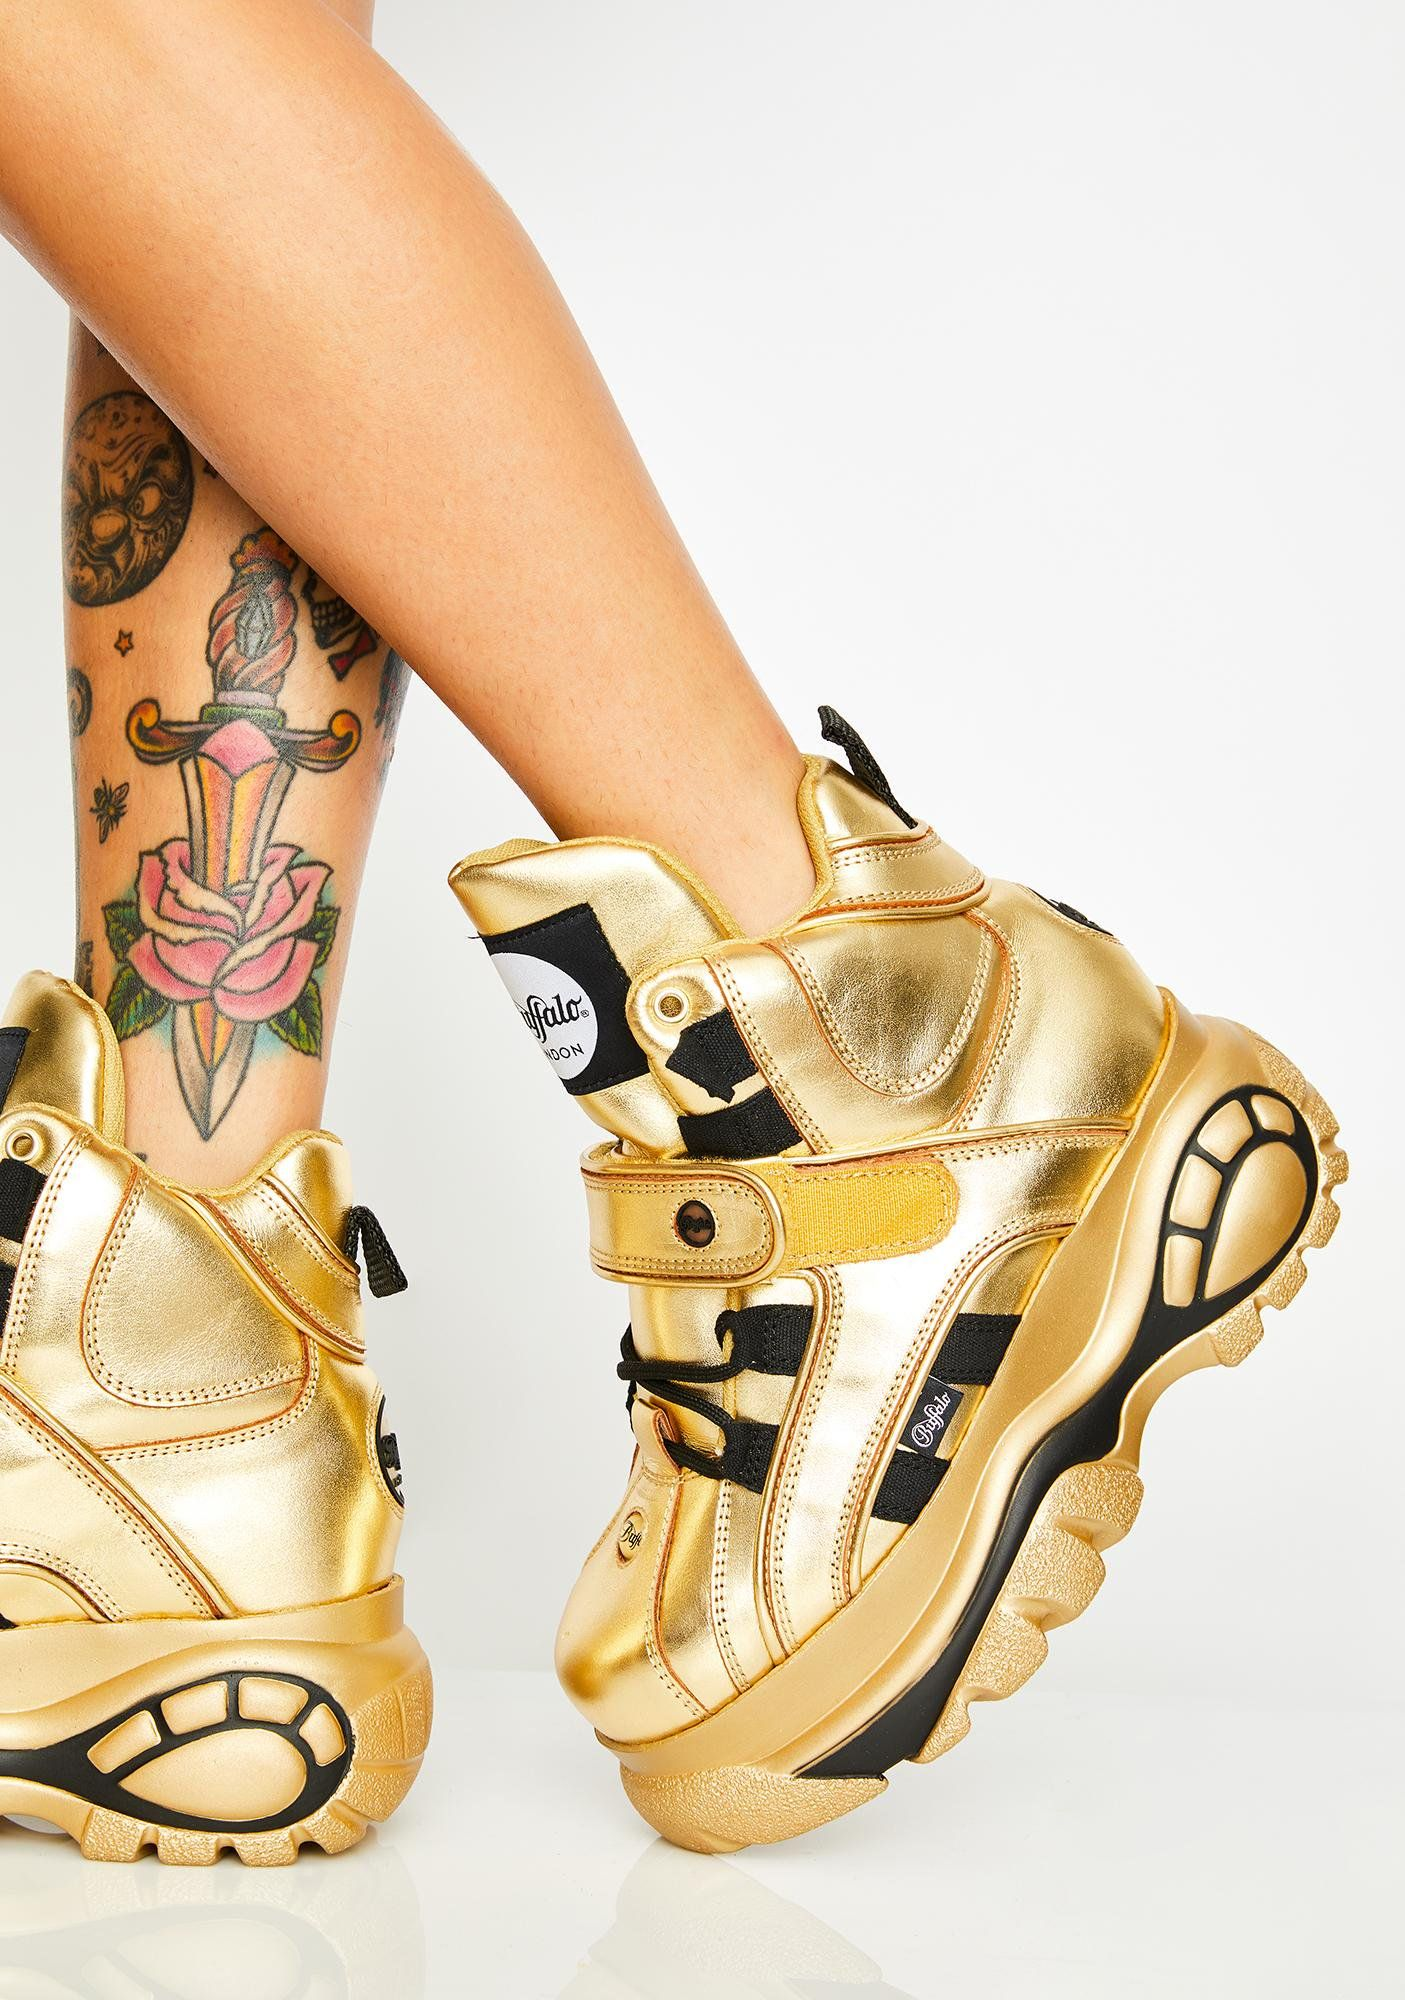 Gold Classic High Nappa Leather Sneakers | Leather sneakers